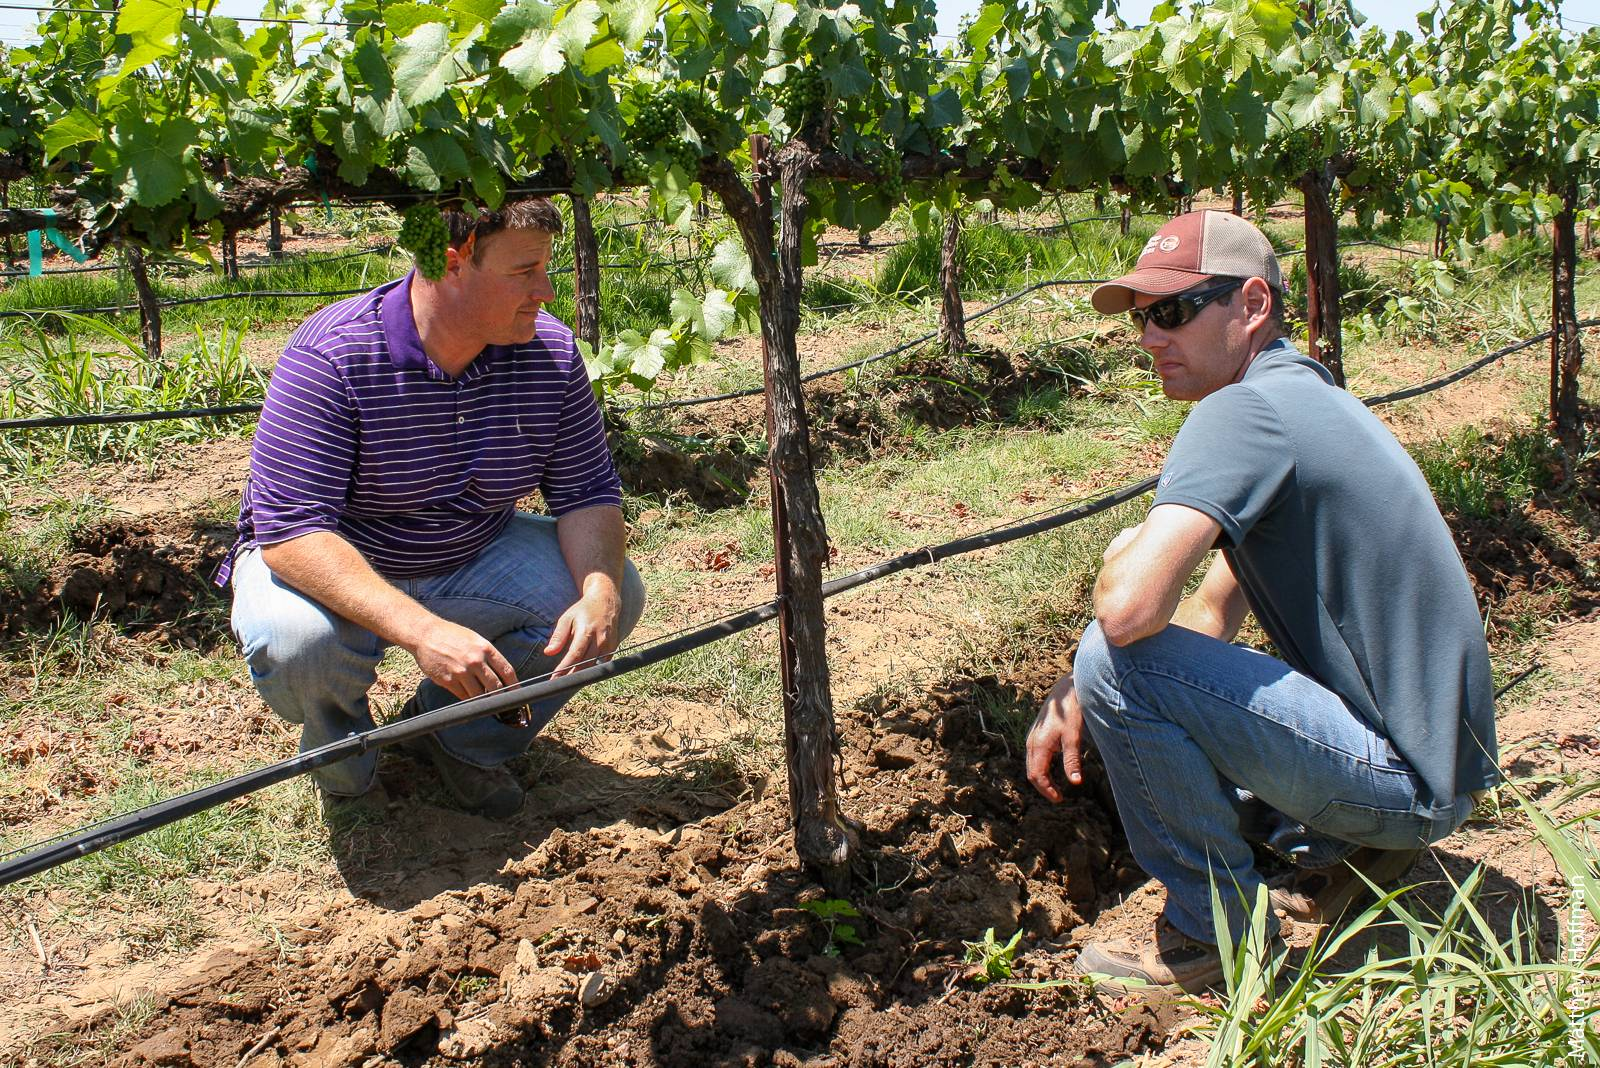 Lodi wine grape growers Craig Ledbetter (left) and Aaron Lange (right) share thoughts after observing a trial pass of a prototype multirow in-row cultivator, engaging in both experiential and social learning simultaneously. In a survey of growers, field research and trials (experiential) and interpersonal relationships with other growers (social) were ranked as highly useful sources for learning about vineyard management.